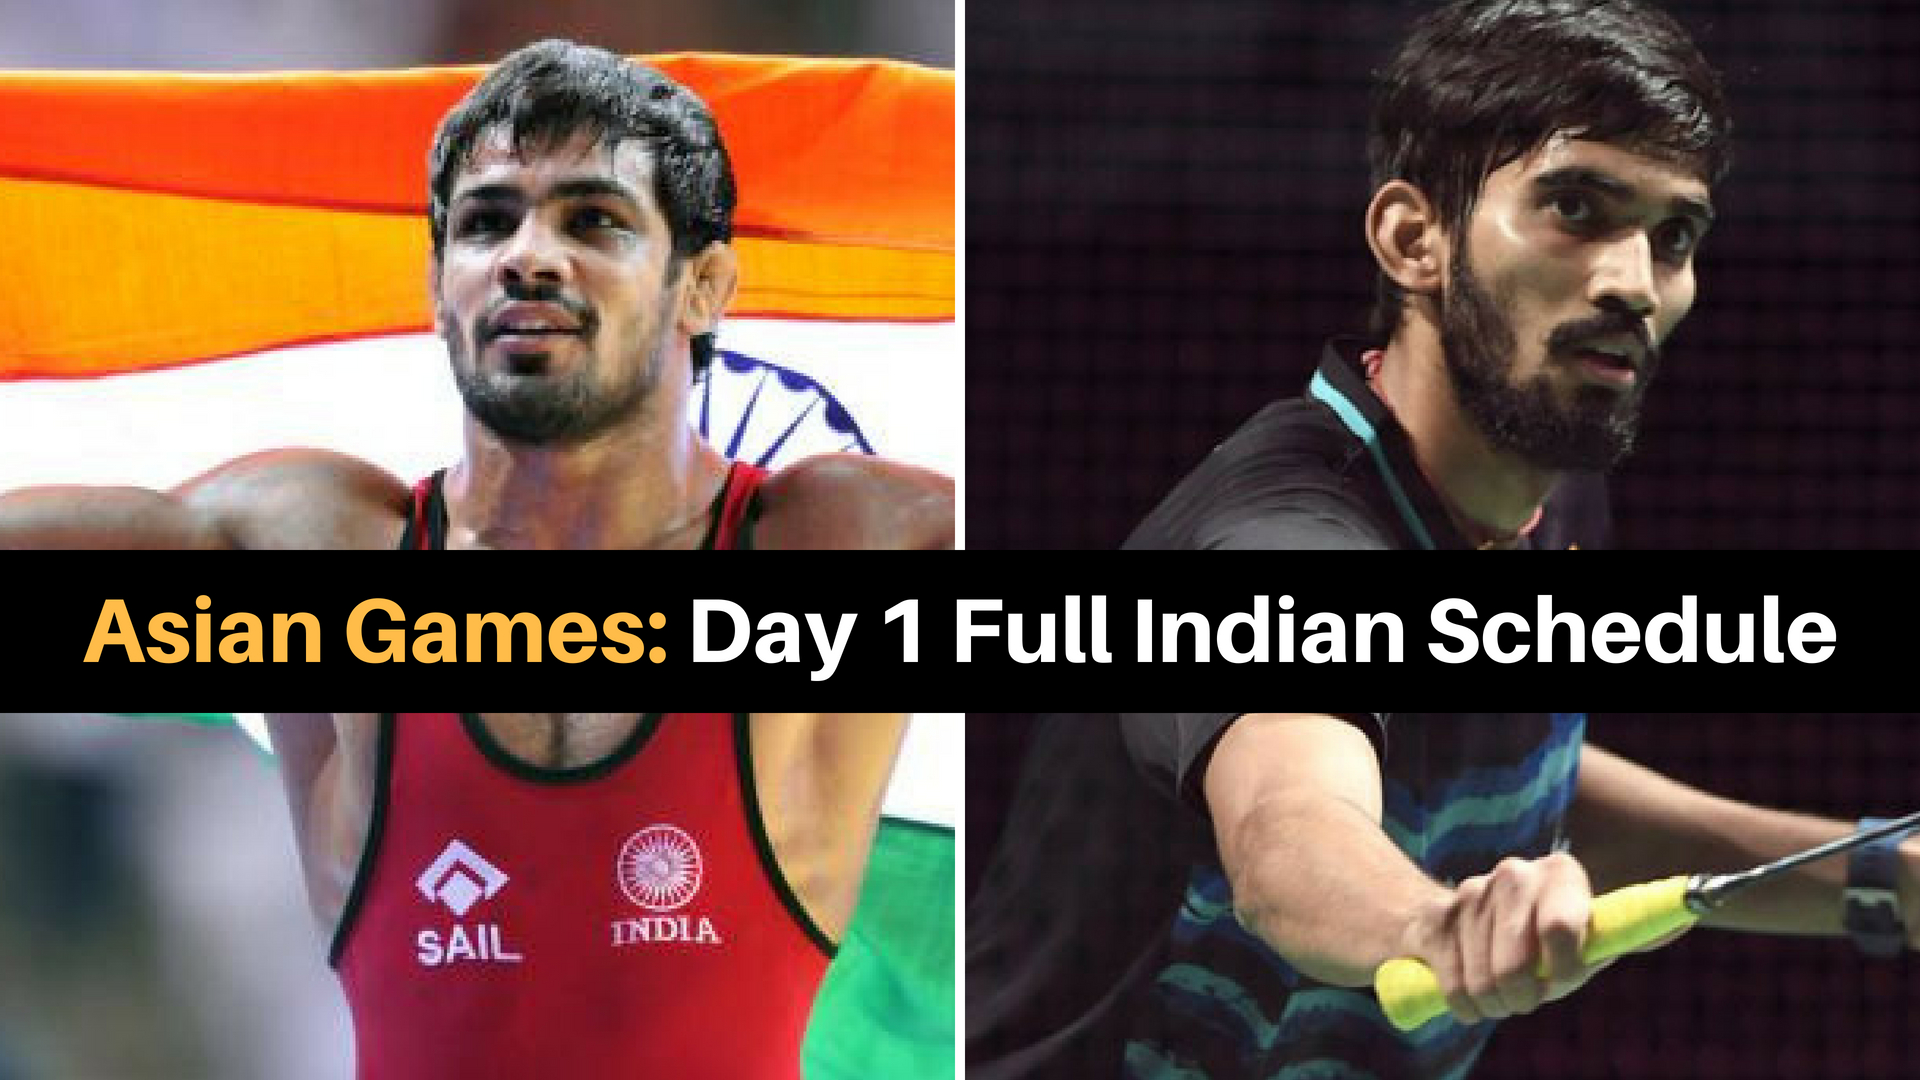 Asian Game : Day 1 Schedule of Indian Athlete